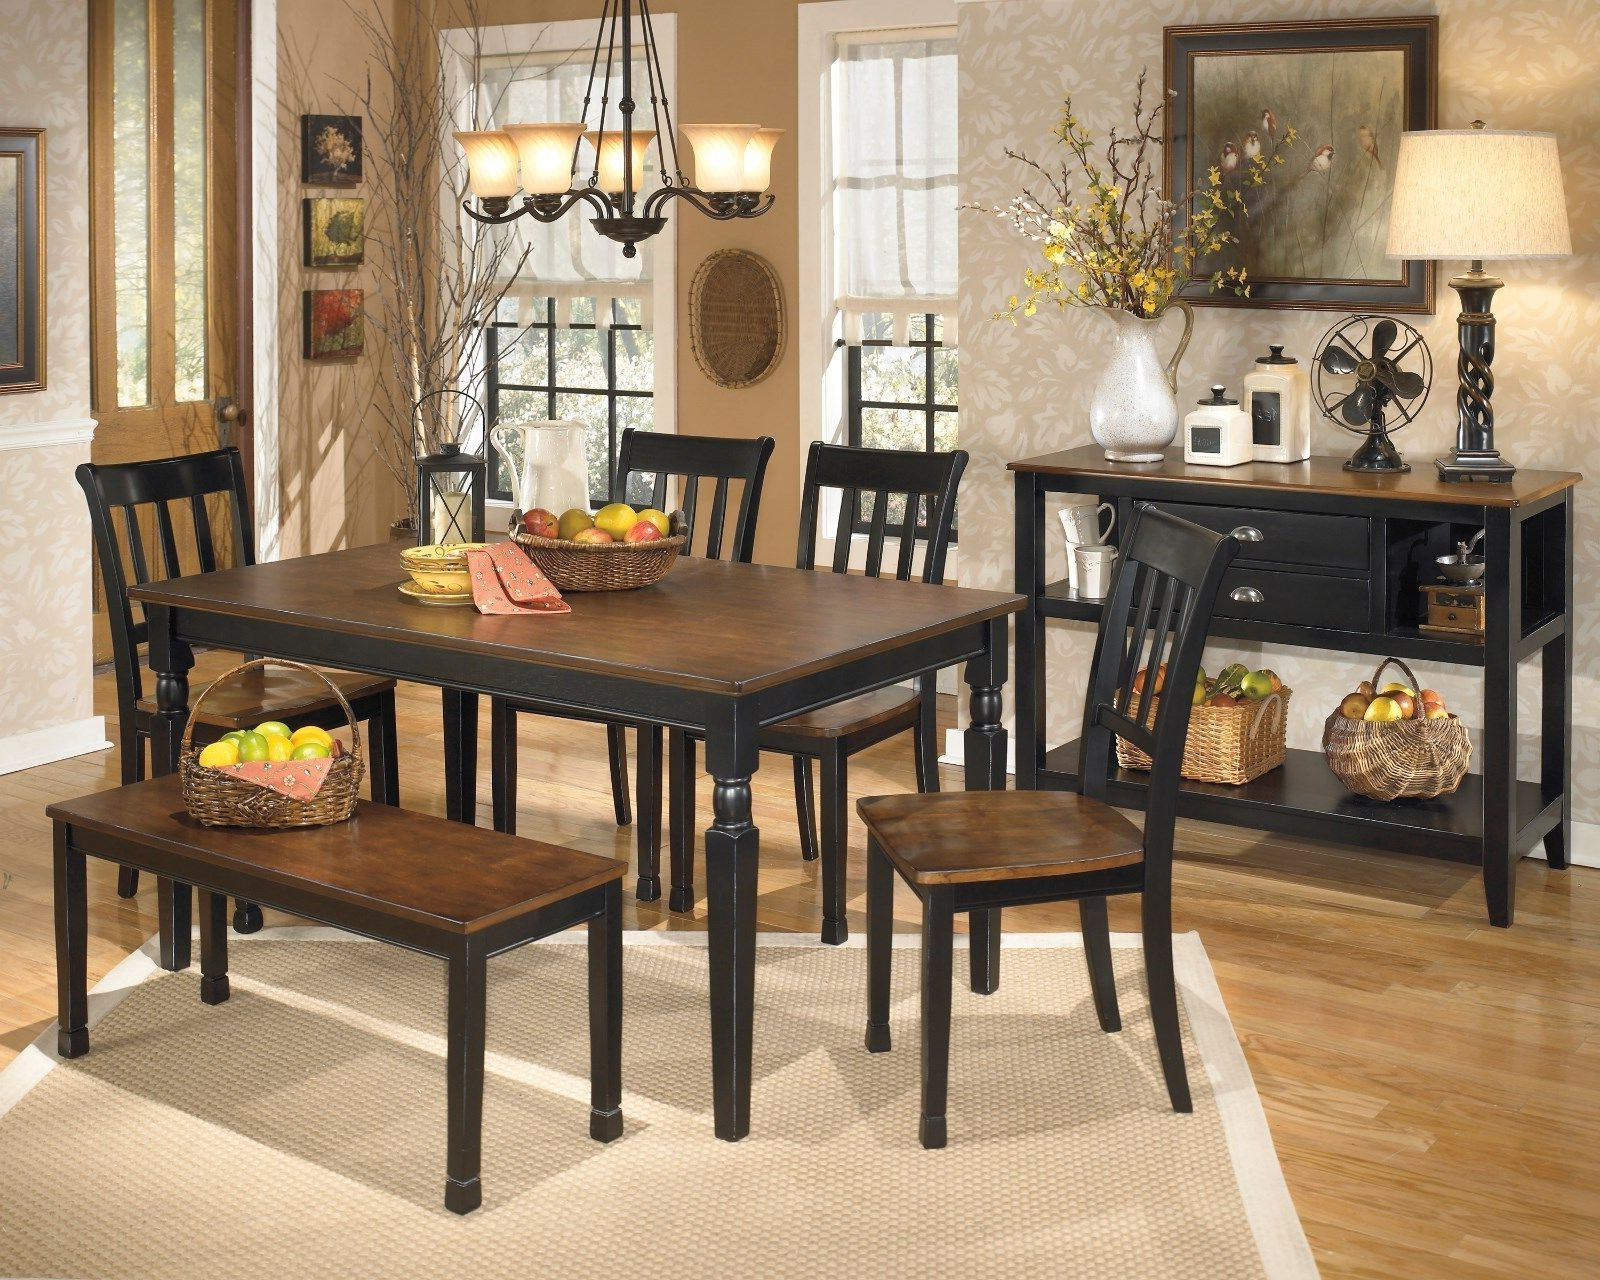 Ashley Furniture Owingsville 6 Piece Dining Table Set D580 Throughout Popular Transitional 6 Seating Casual Dining Tables (View 5 of 25)